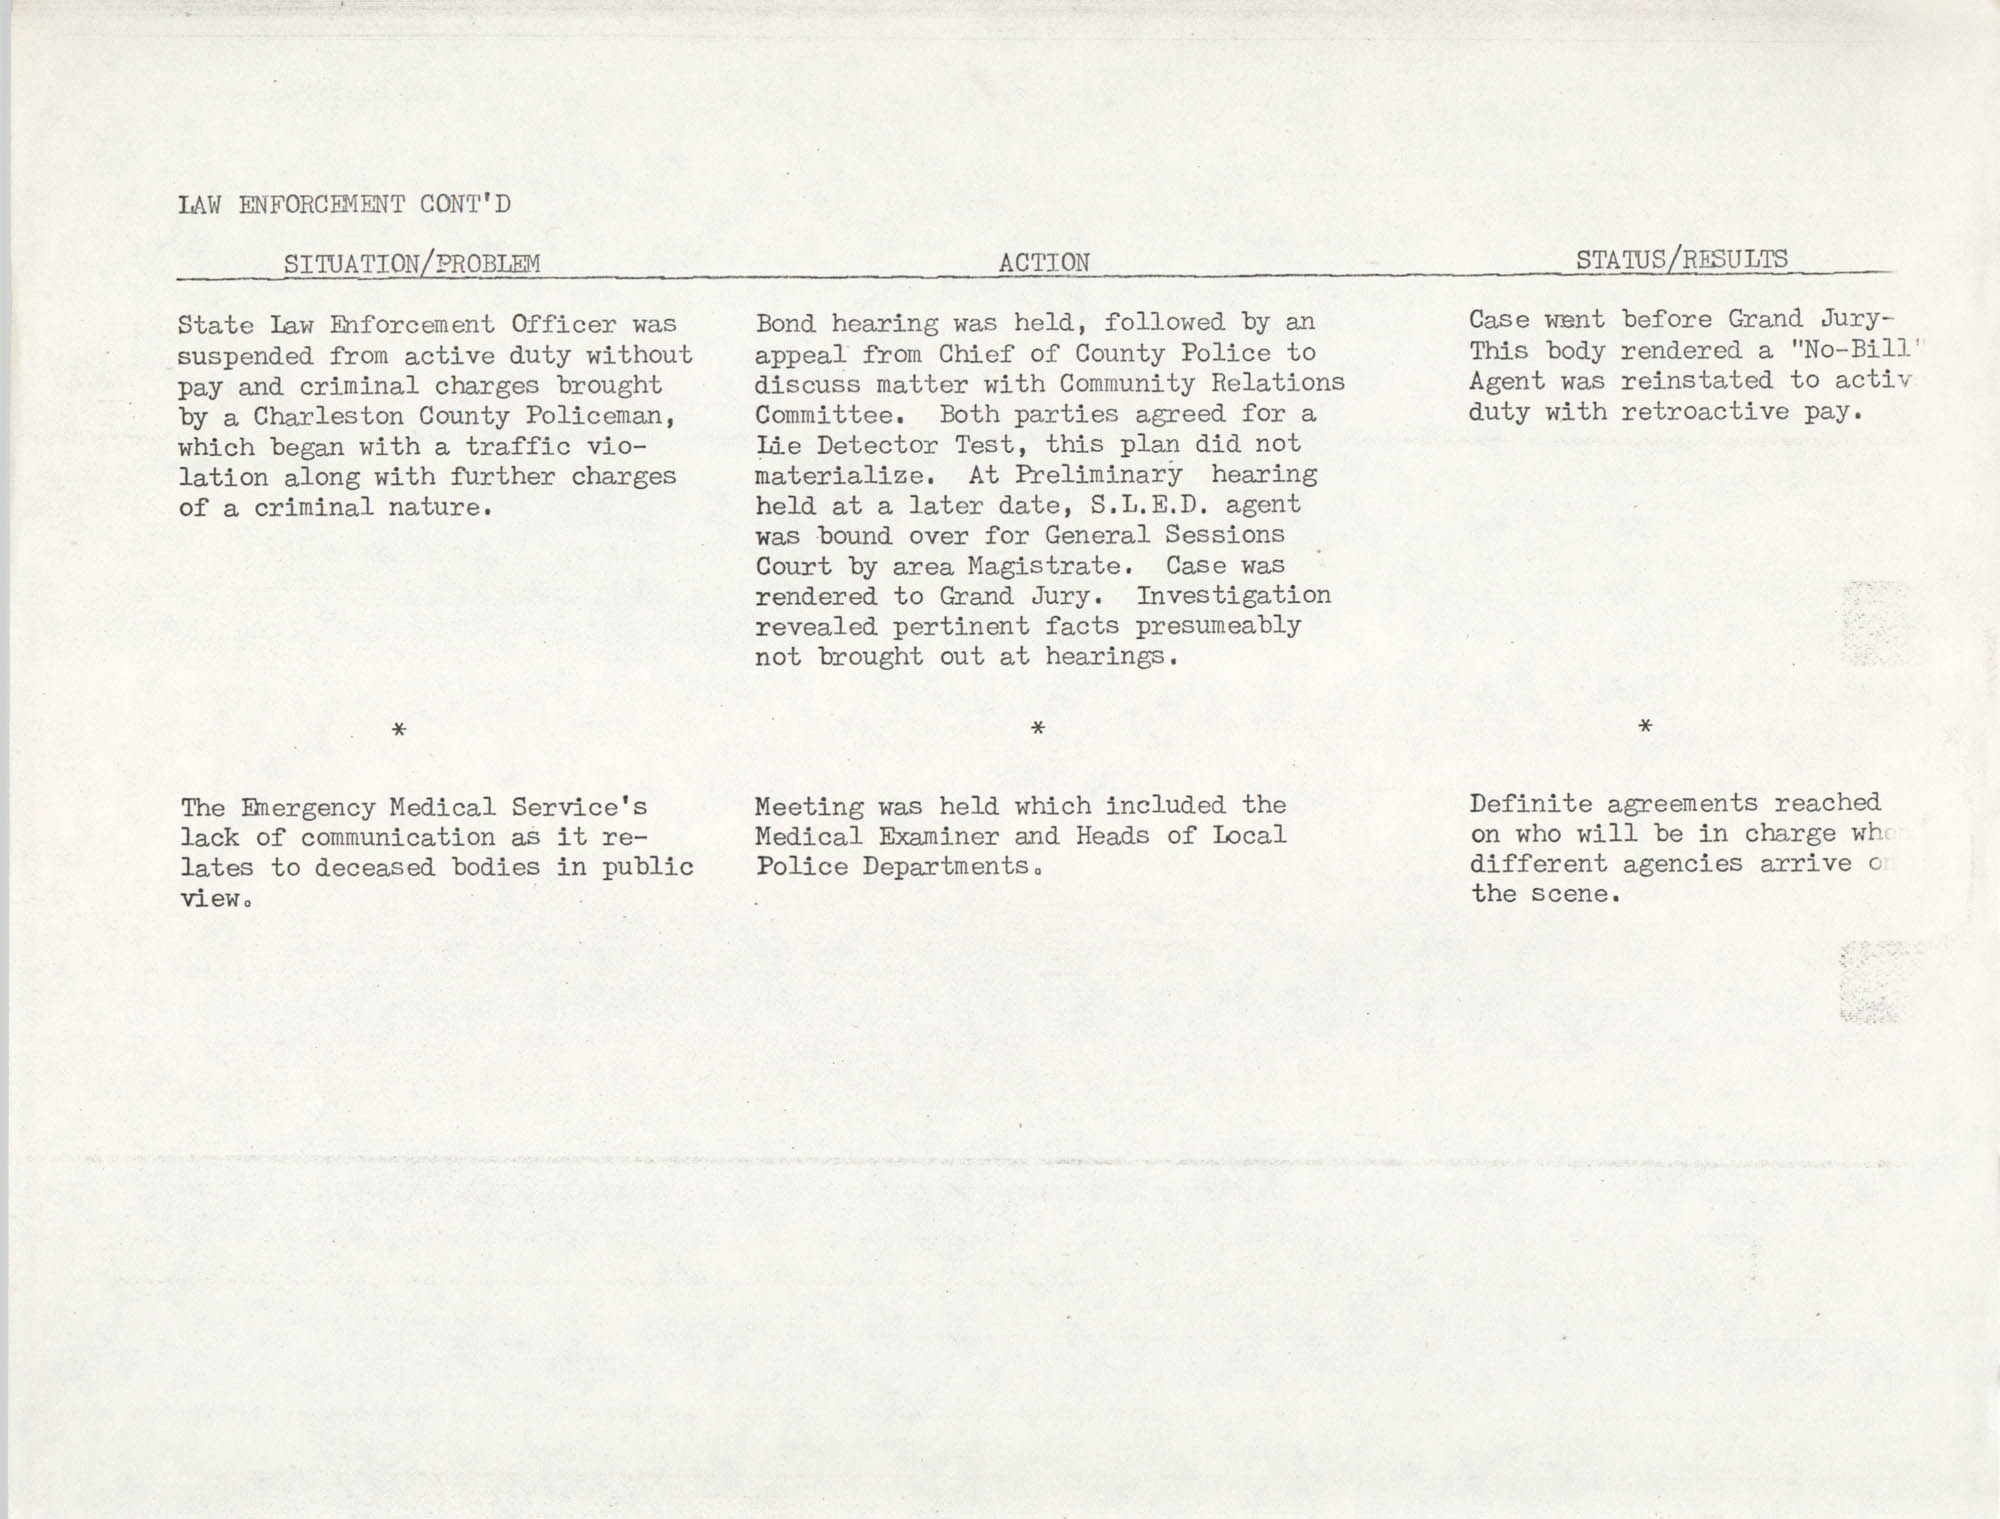 The Committee on Better Racial Assurance, Community Relations Program Page 5